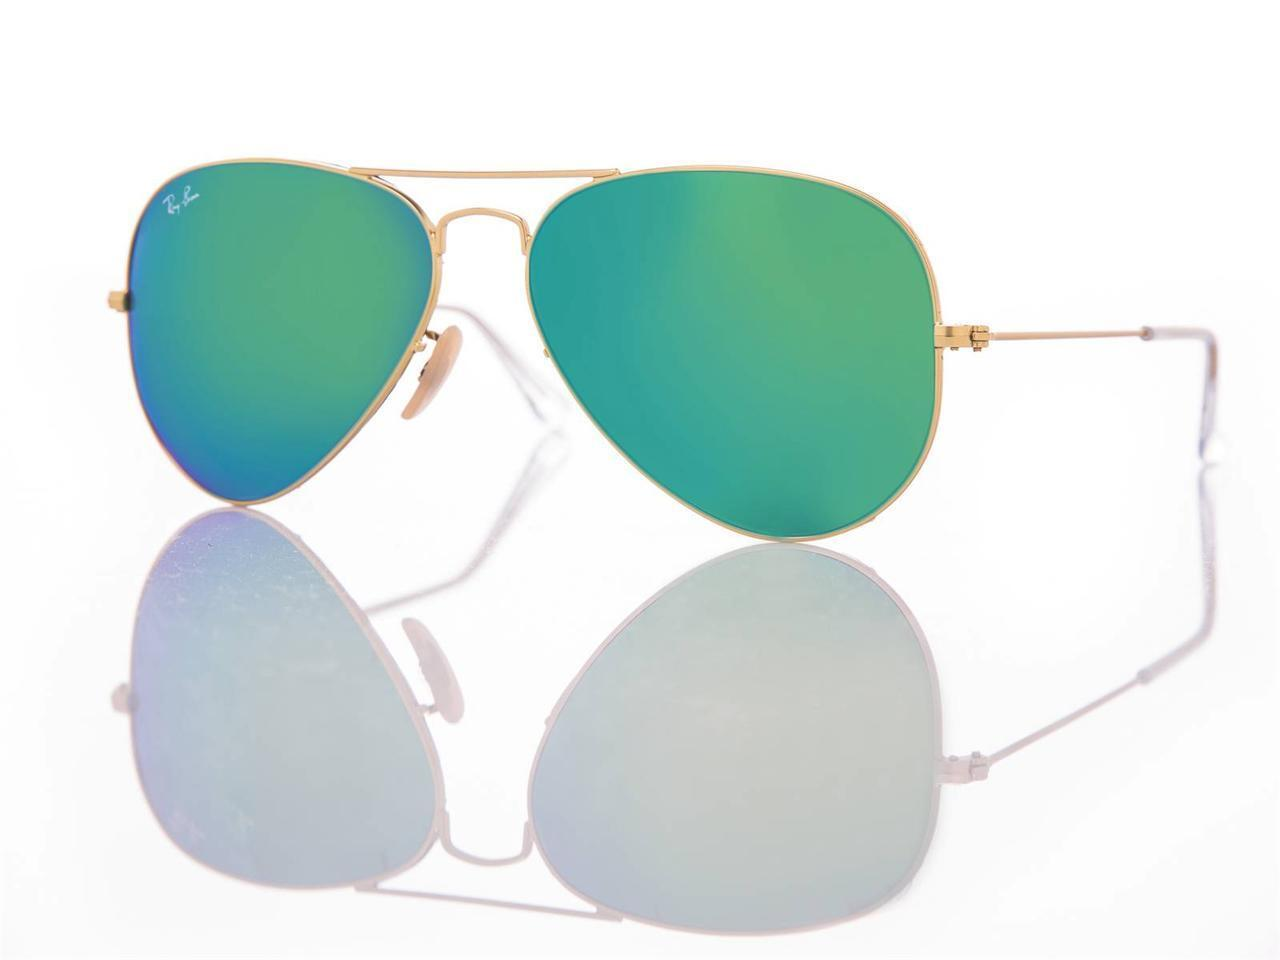 d1abaa248a Details about New Authentic Ray-Ban Sunglasses RB 3025 Aviator 112 19 Gold Green  Mirror 62mm